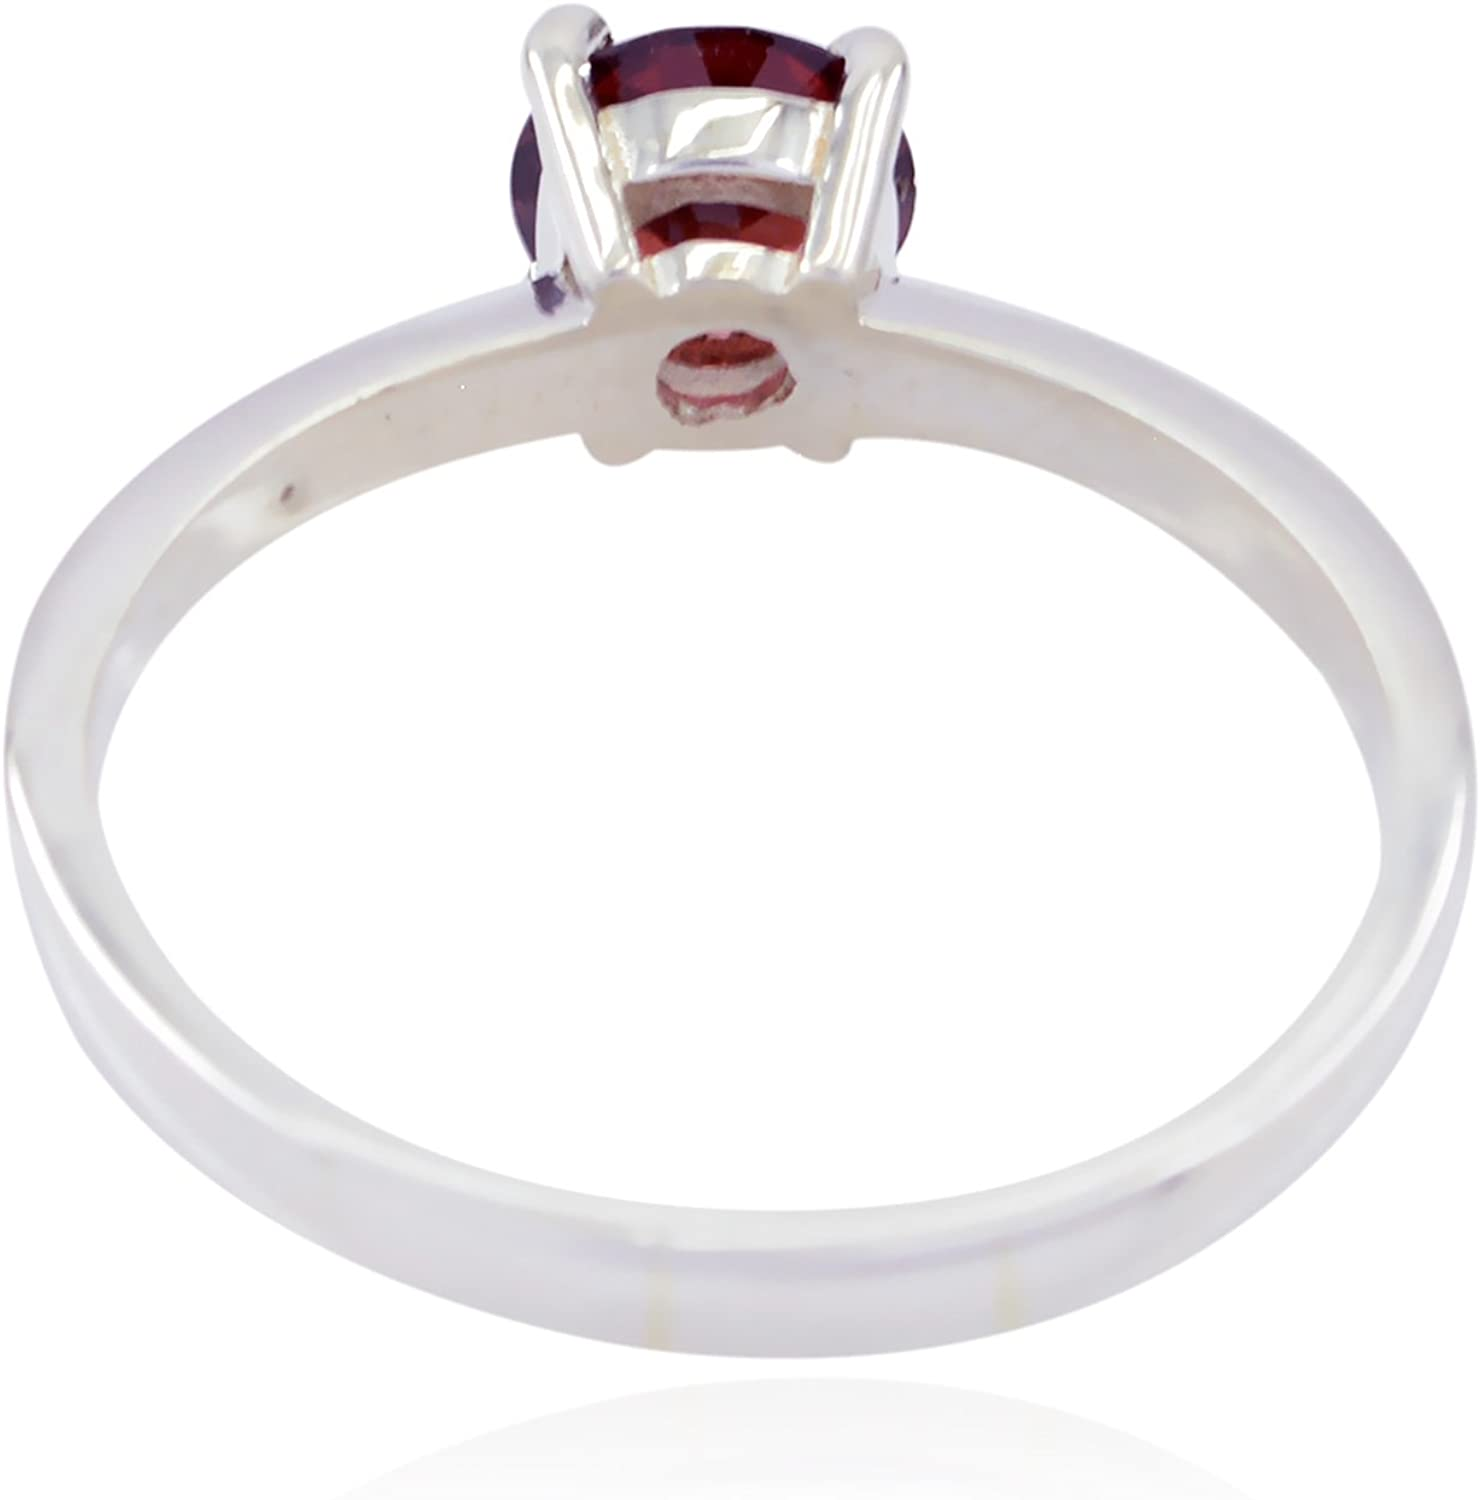 Natural Gemstone Round Faceted Garnet Rings 925 Sterling Silver Red Garnet Natural Gemstone Ring top Jewelry fine Item Gift for Fathers Day top Ring